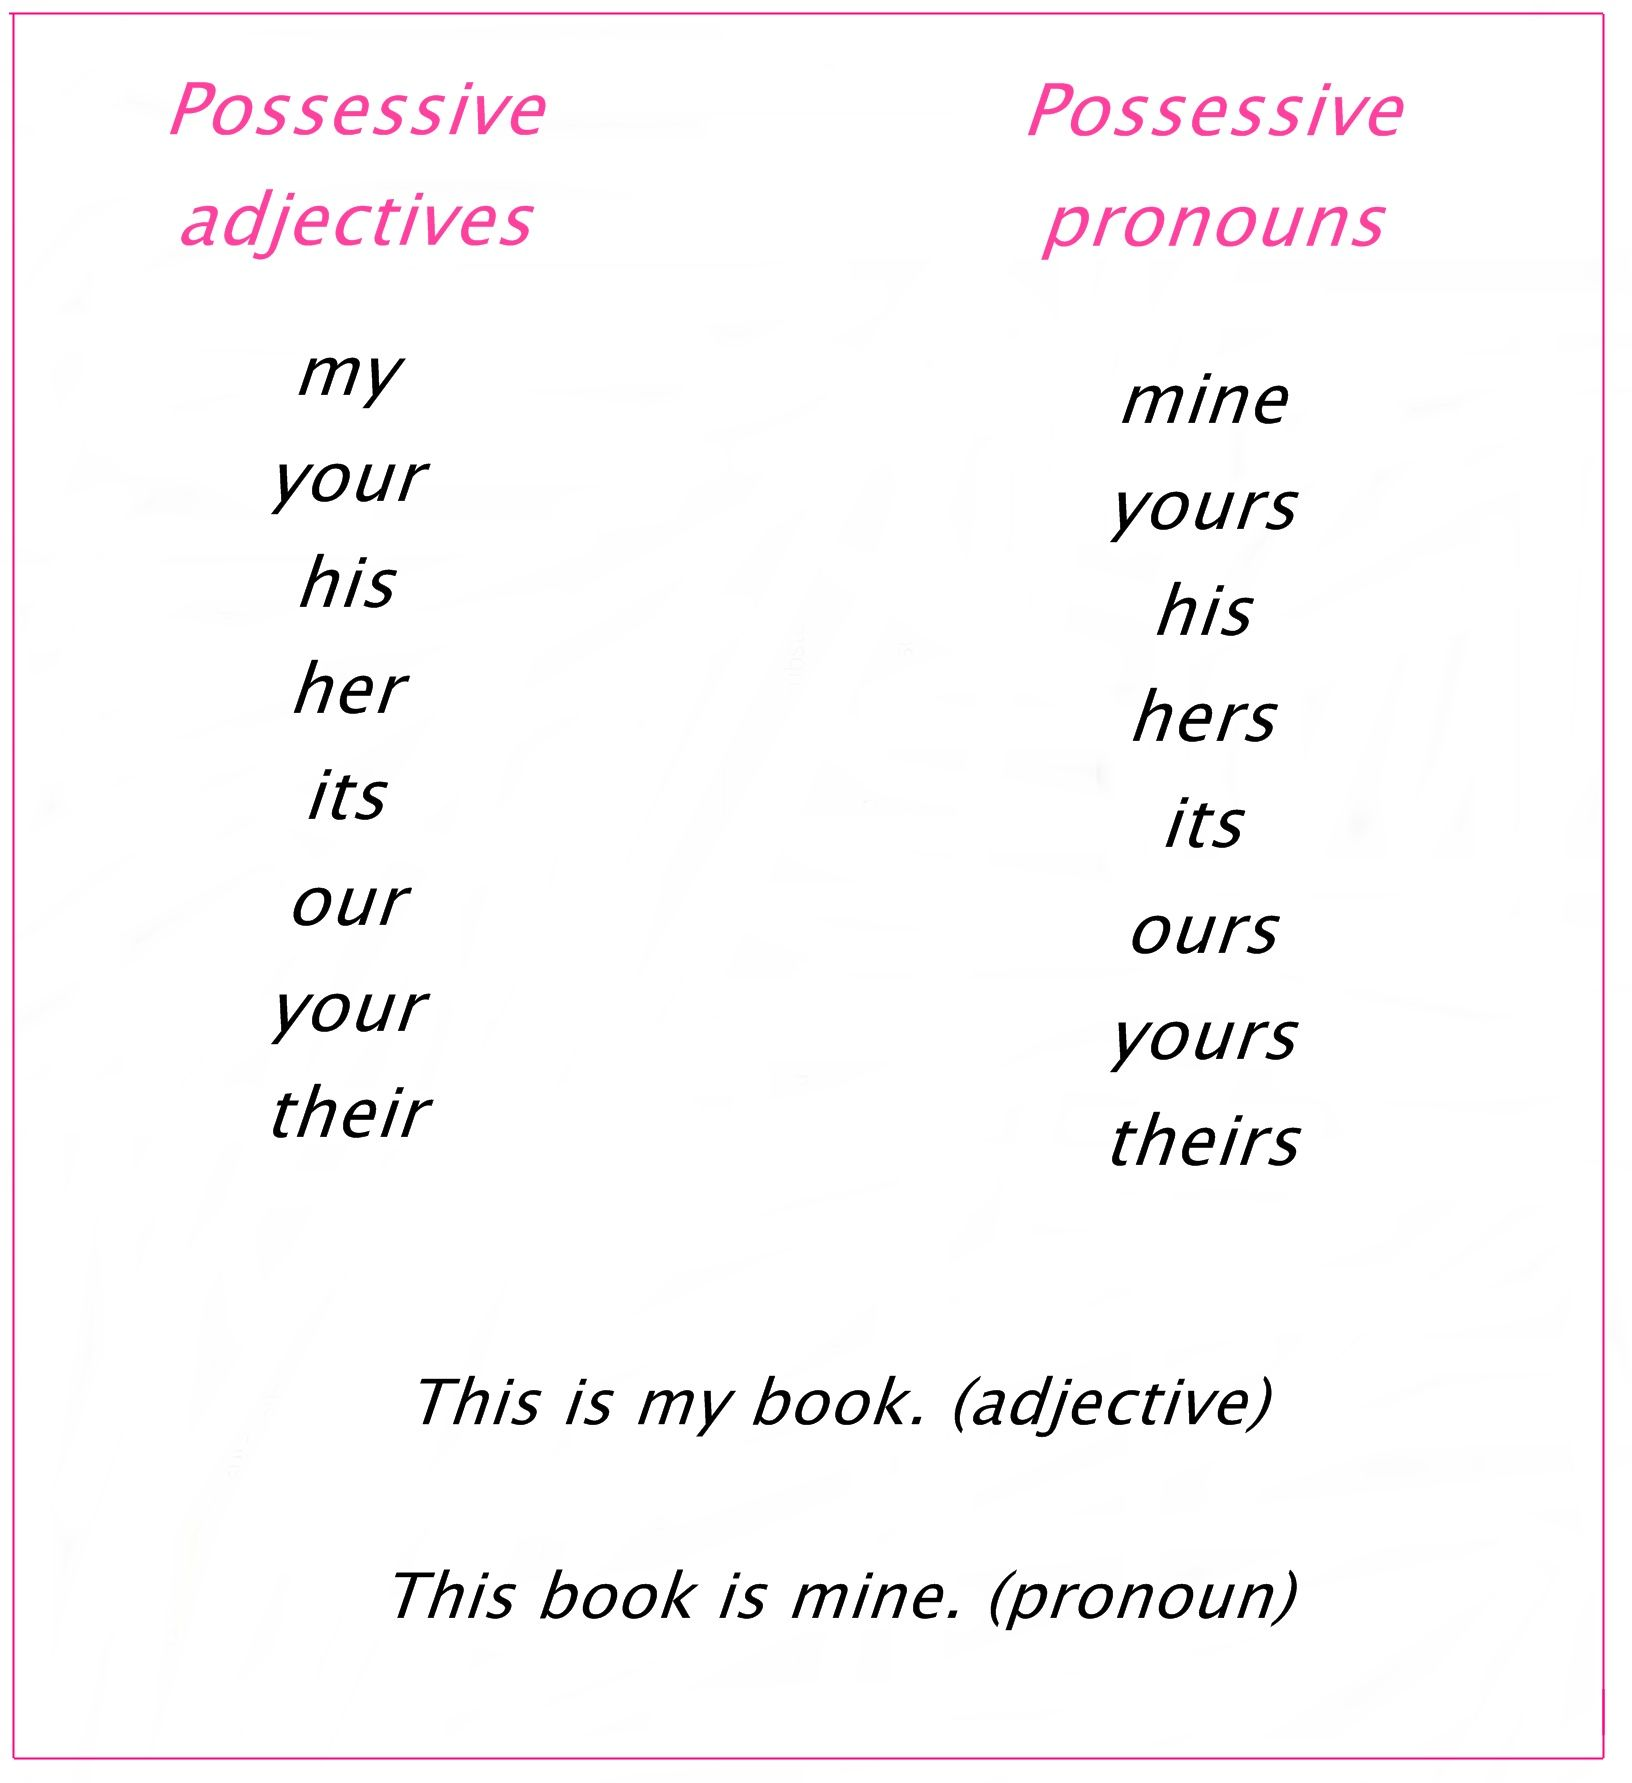 Possessive Adjectives and Pronouns: * Possessive adjectives come before the